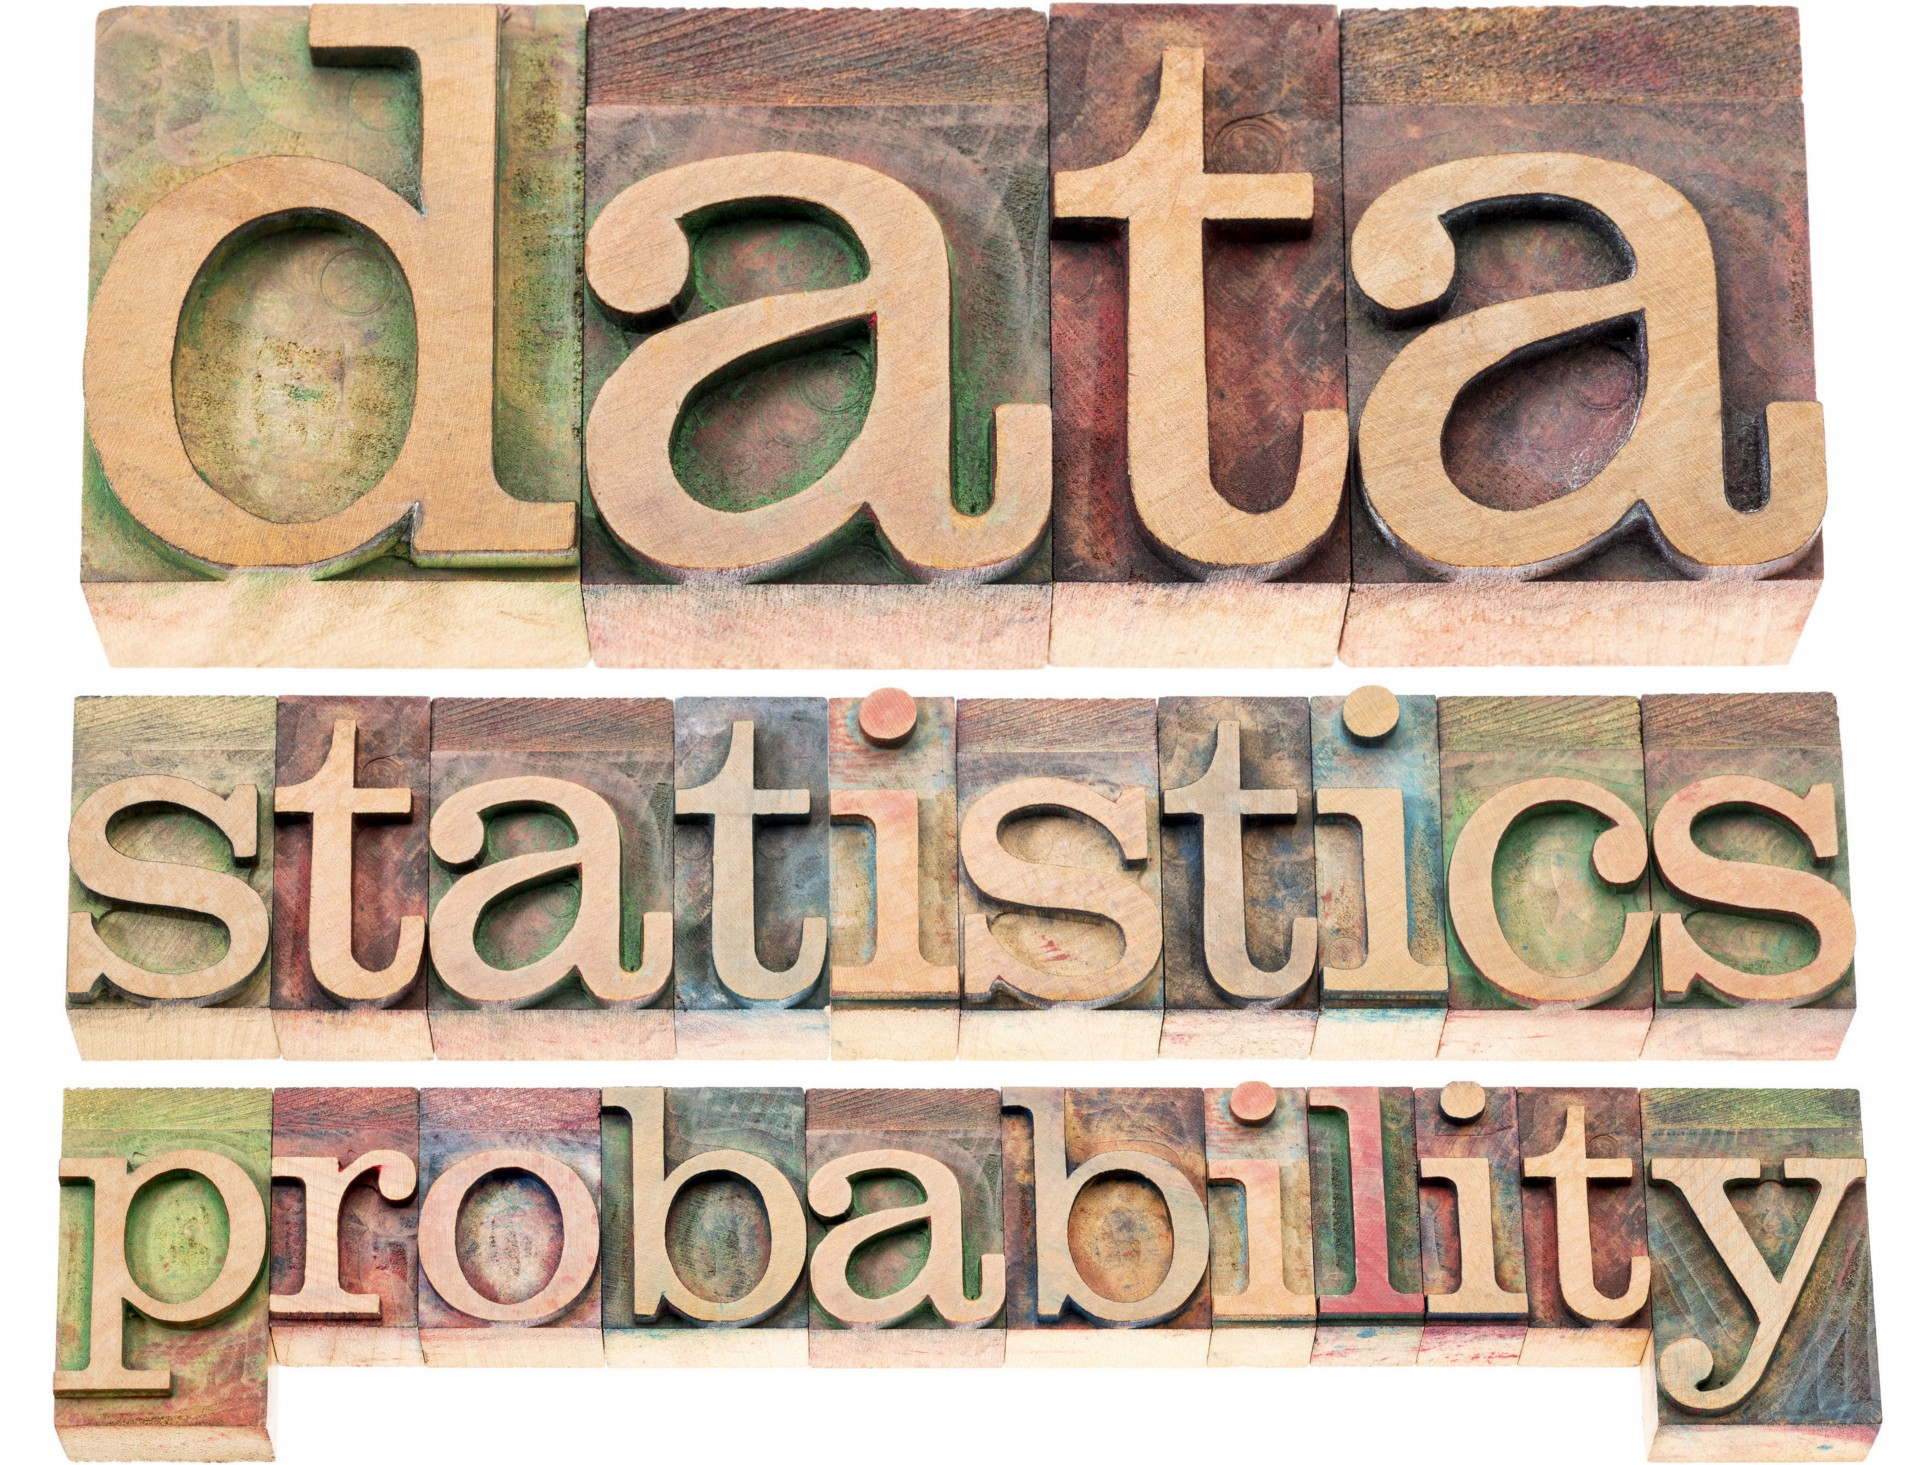 if you want to learn data science take a few of these statistics if you want to learn data science take a few of these statistics classes